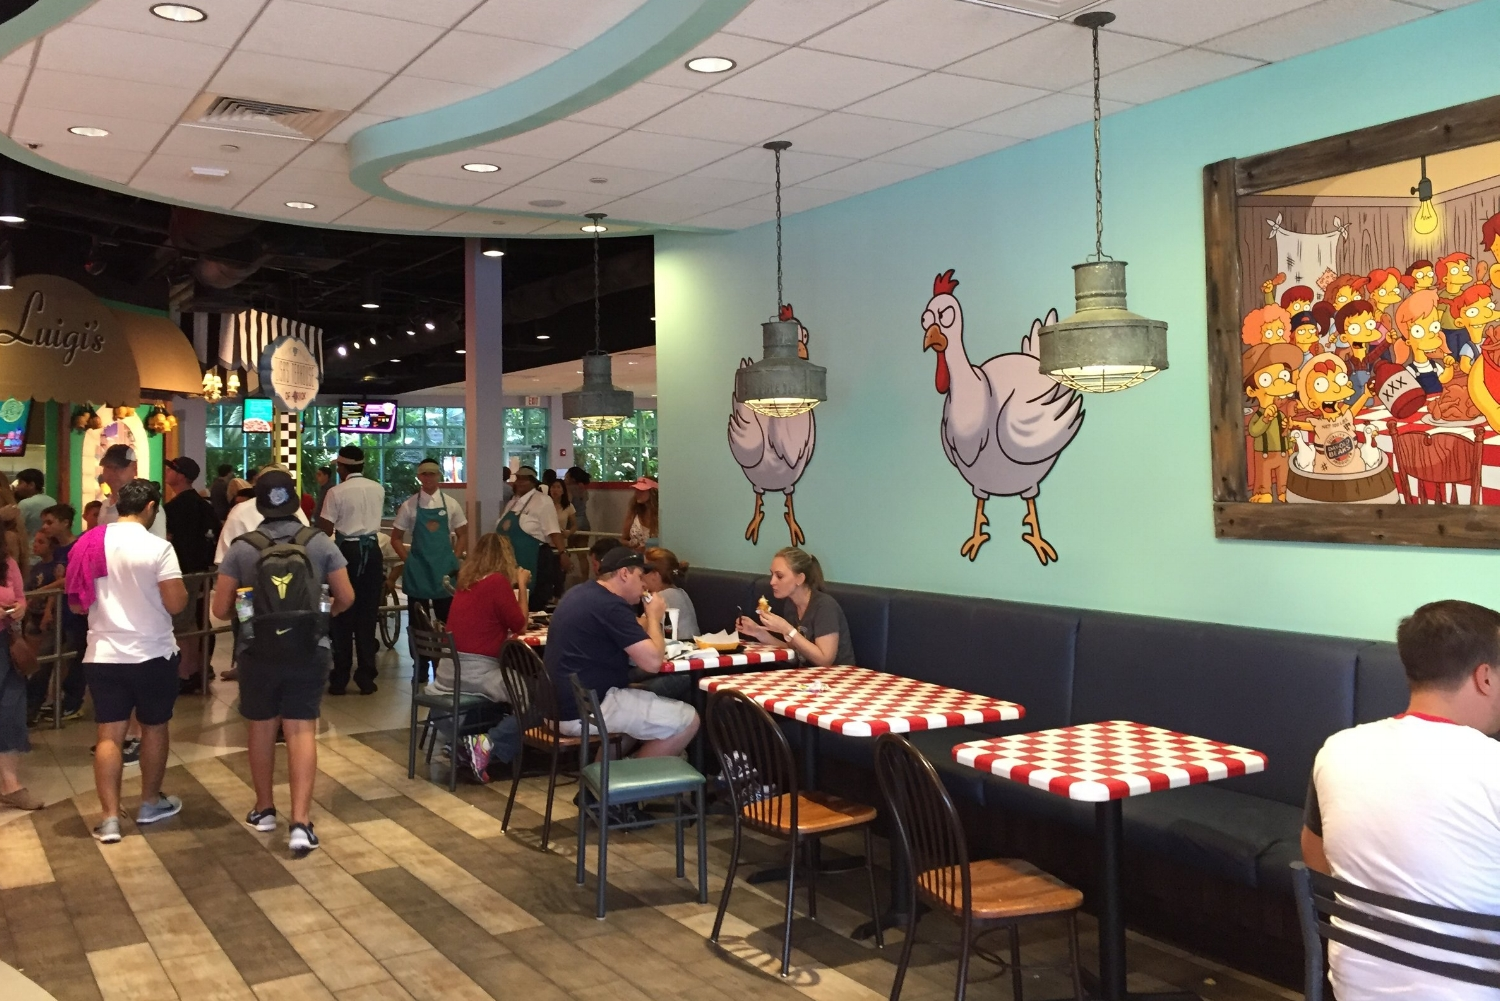 Seating Near the Ordering Stations at Fast Food Blvd